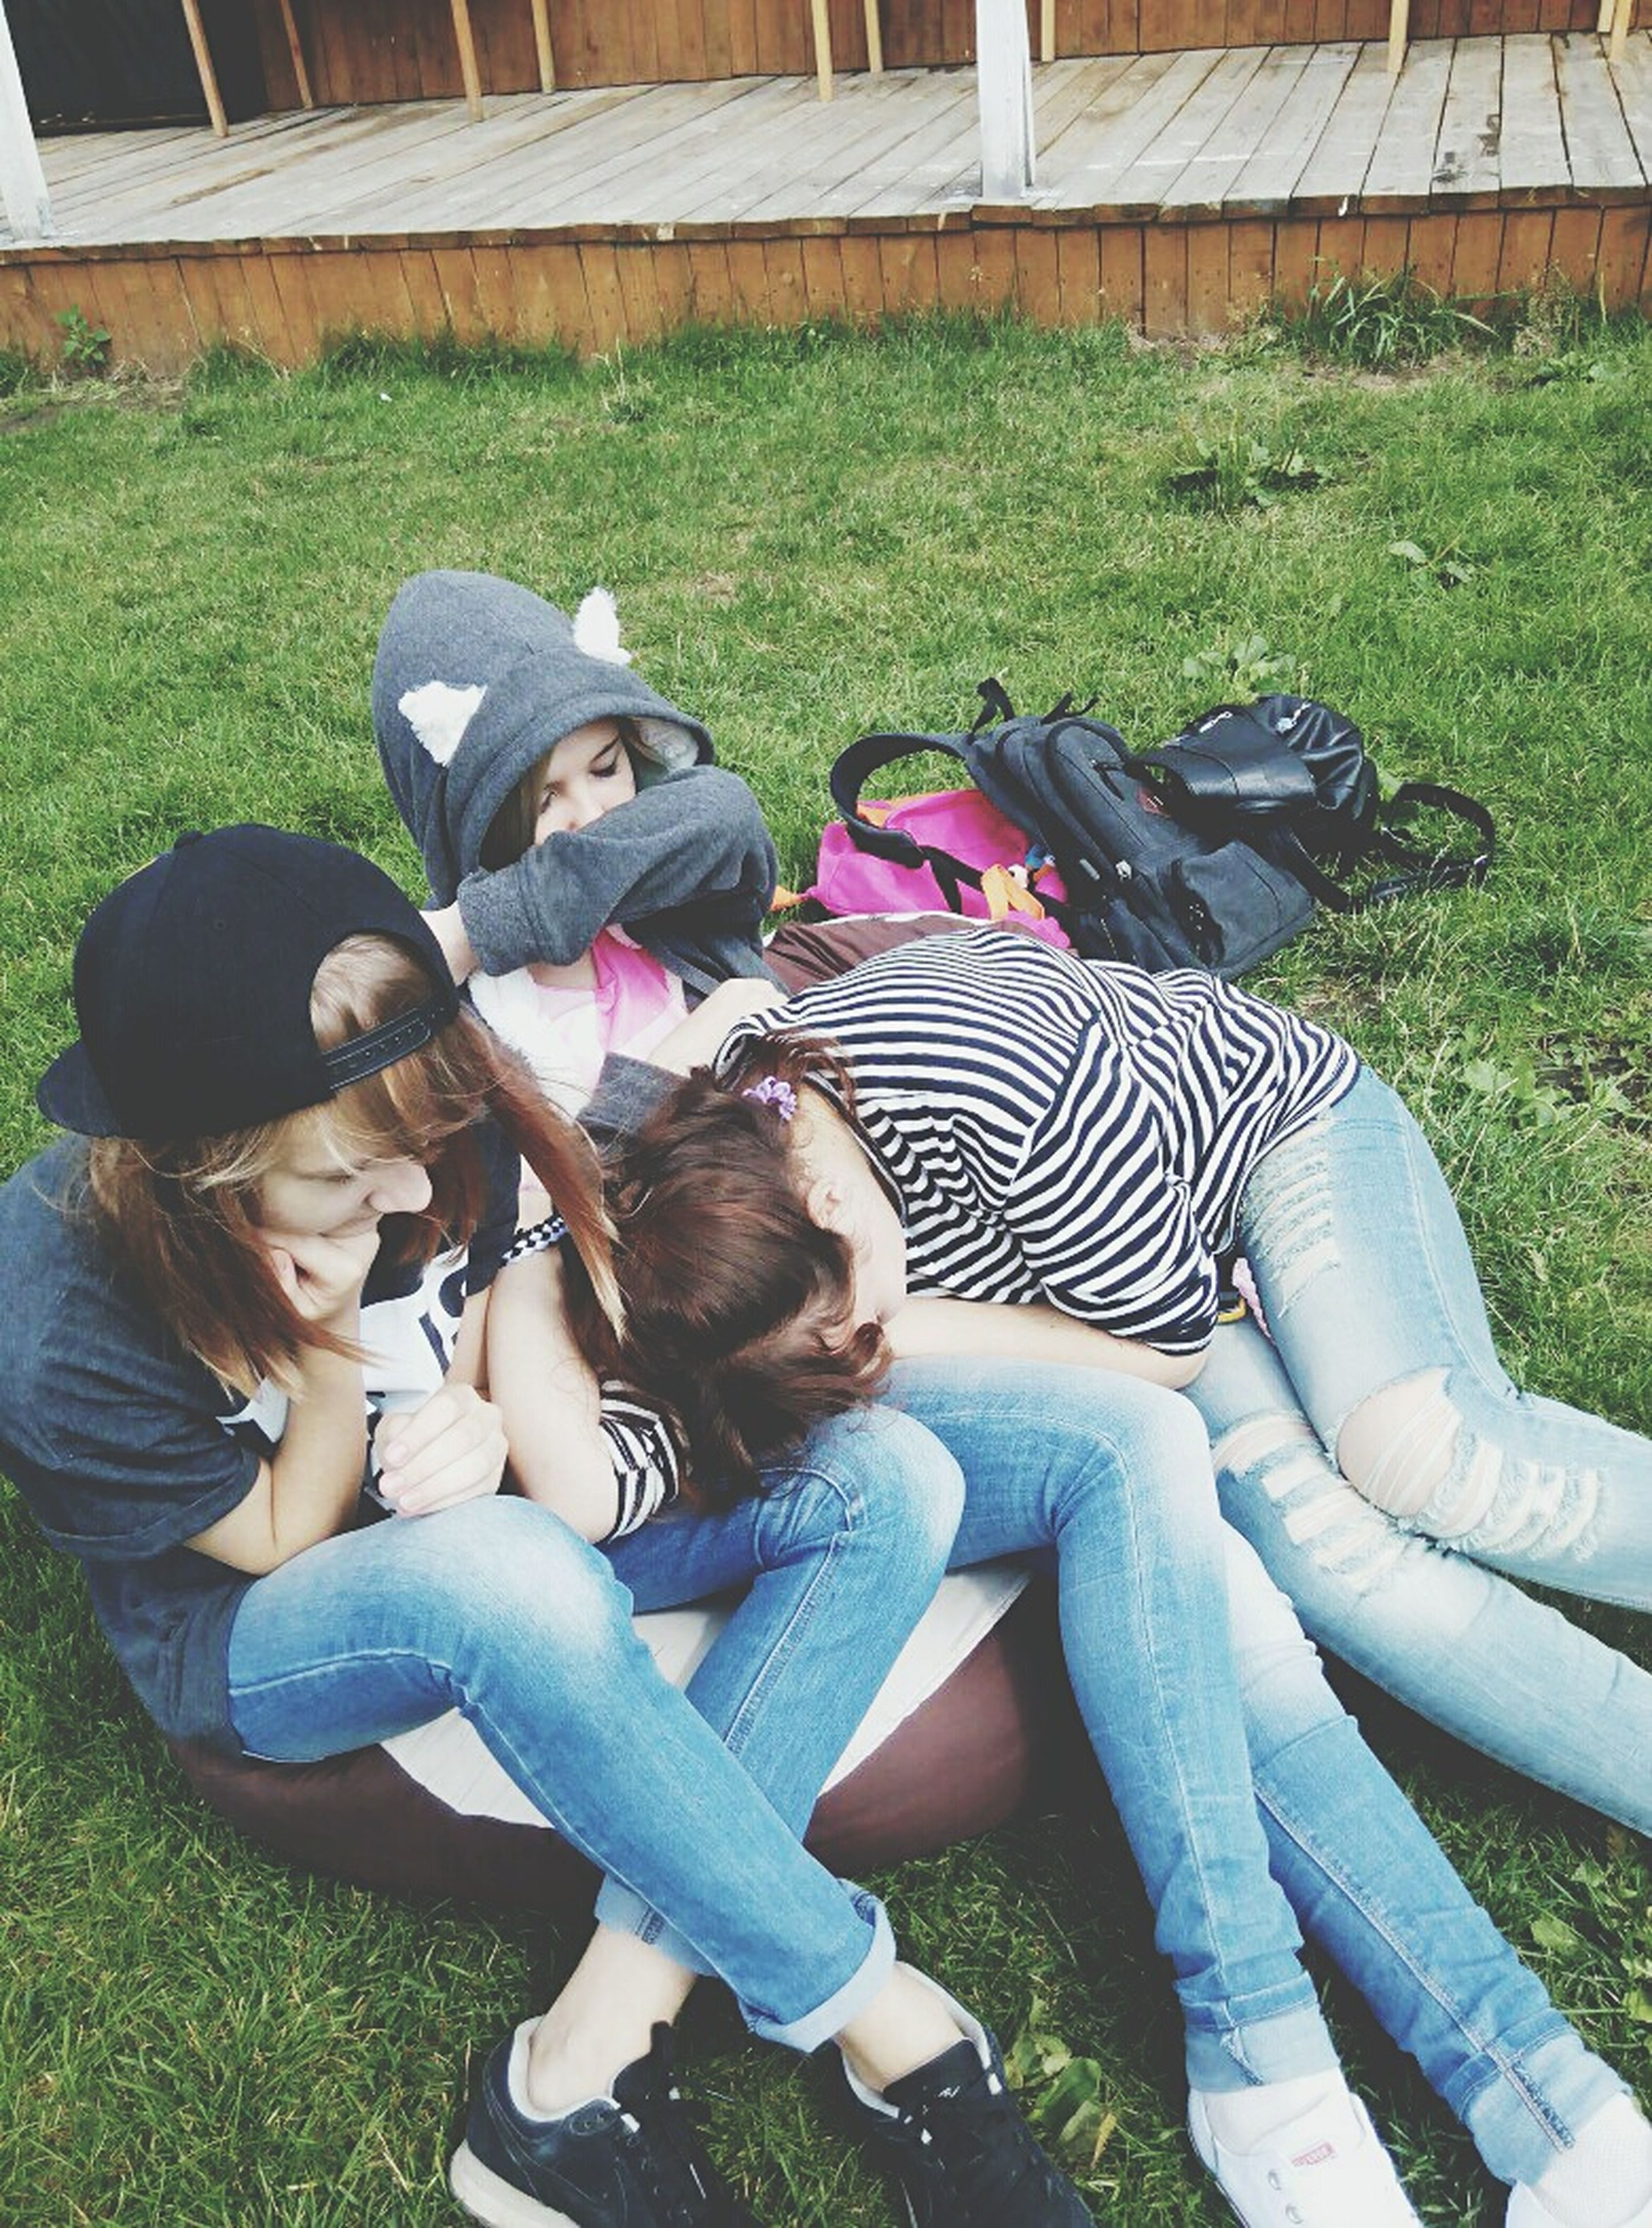 grass, lifestyles, leisure activity, sitting, togetherness, relaxation, casual clothing, person, bonding, lying down, childhood, park - man made space, young adult, full length, young women, elementary age, girls